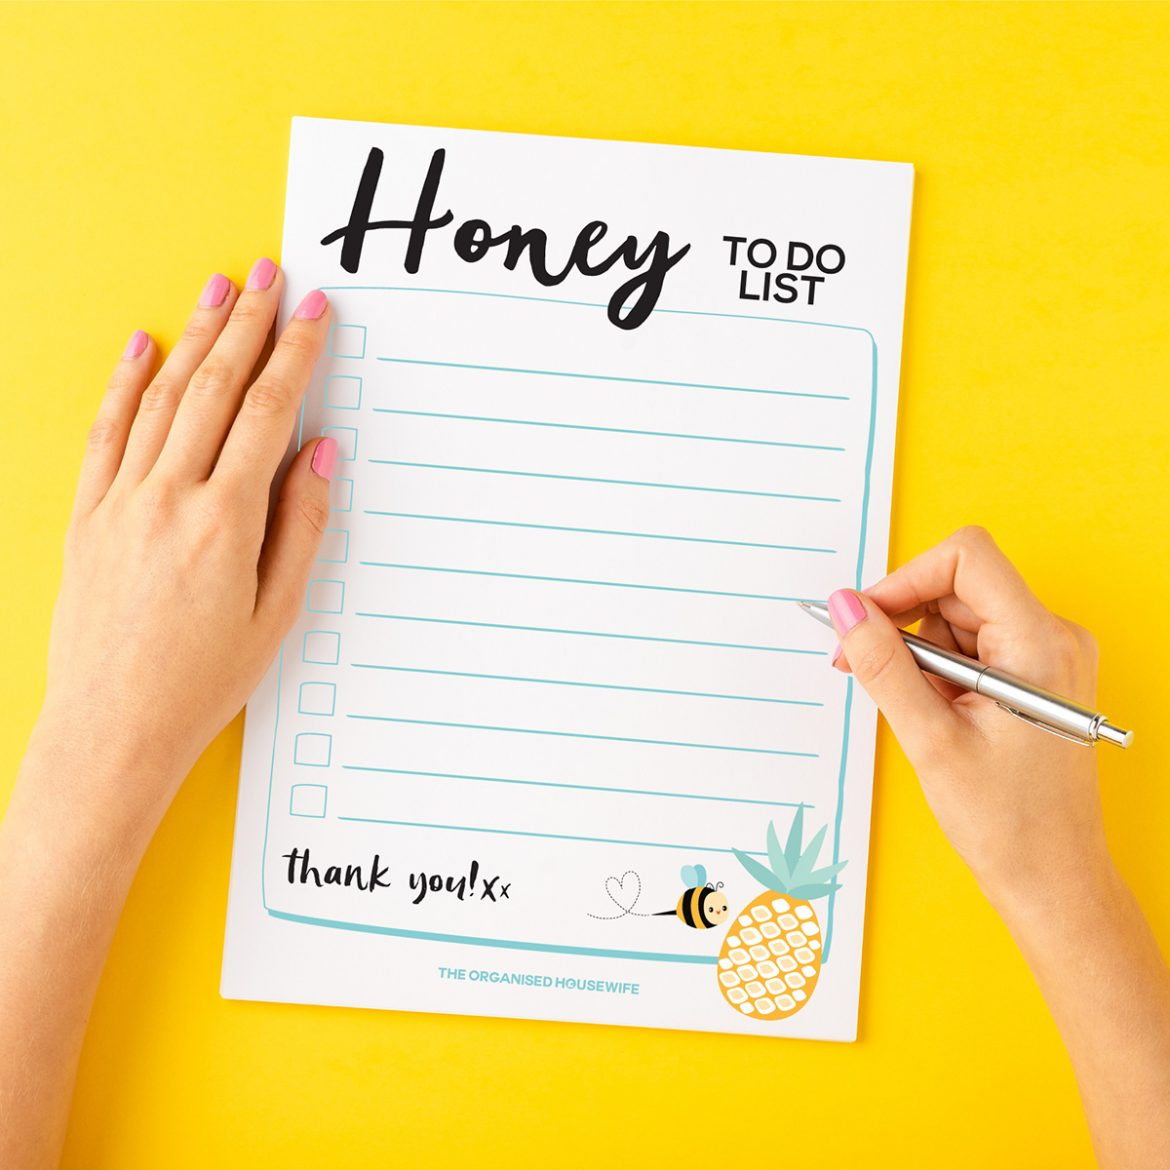 Honey to do list by The Organised Housewife